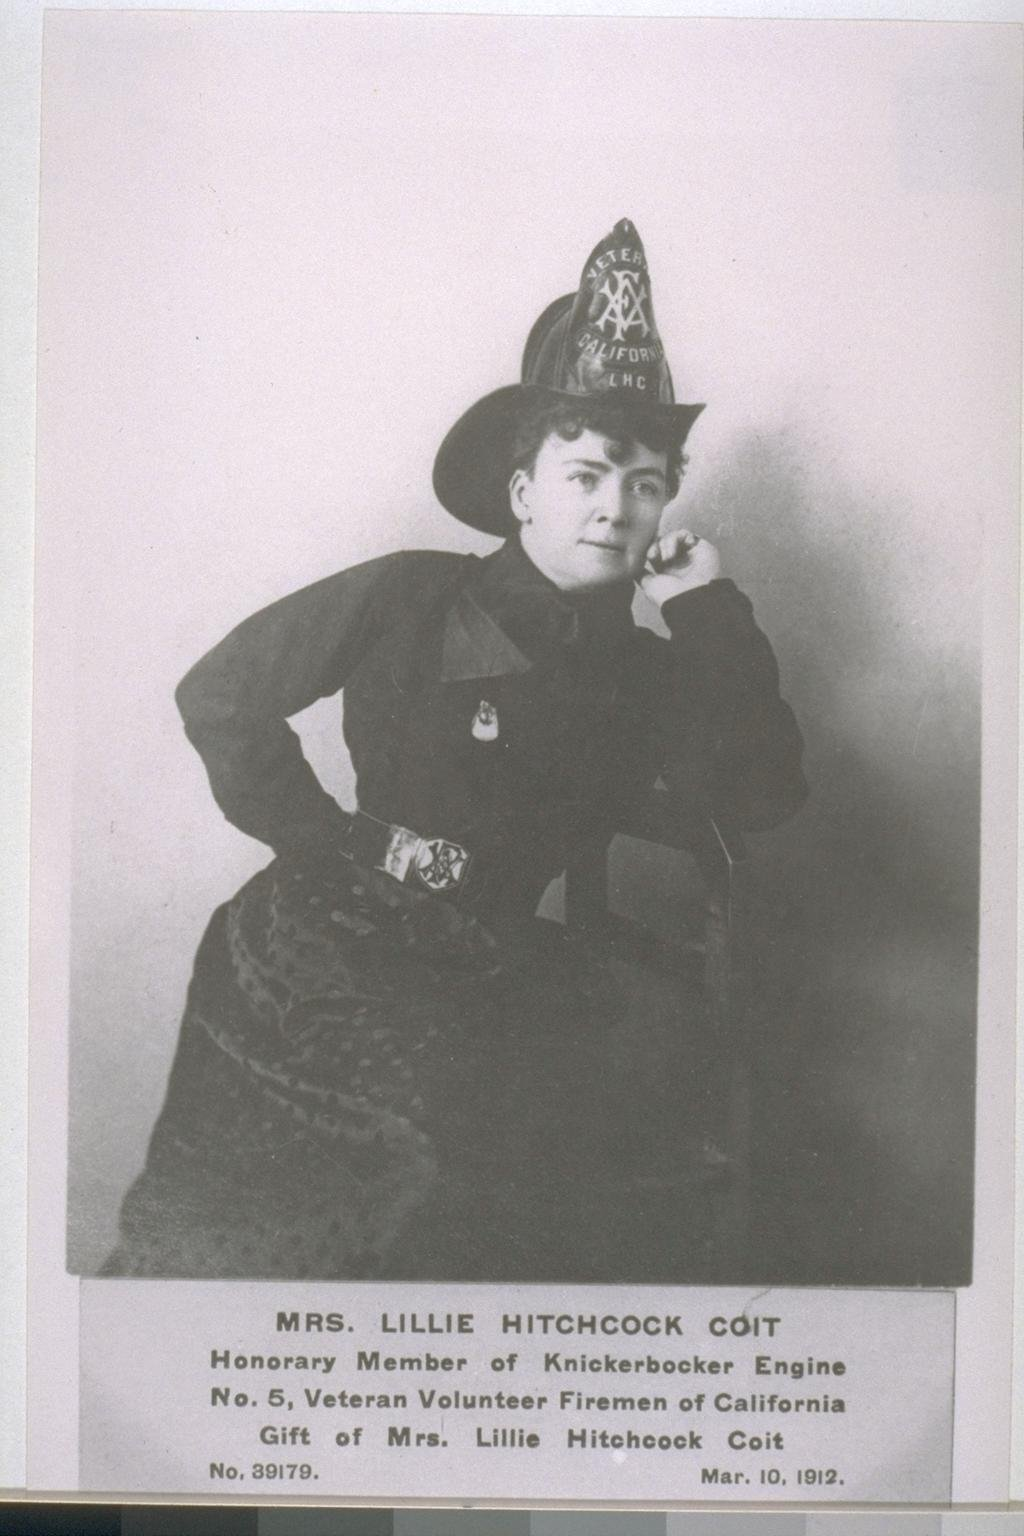 """Mrs. Lillie Hitchcock Coit, namesake of the Tower. Her fascination with firefighters may have stemmed from losing two friends to a blaze as a young girl. She is often called the """"matron saint"""" of San Francisco firefighters for her tireless support."""